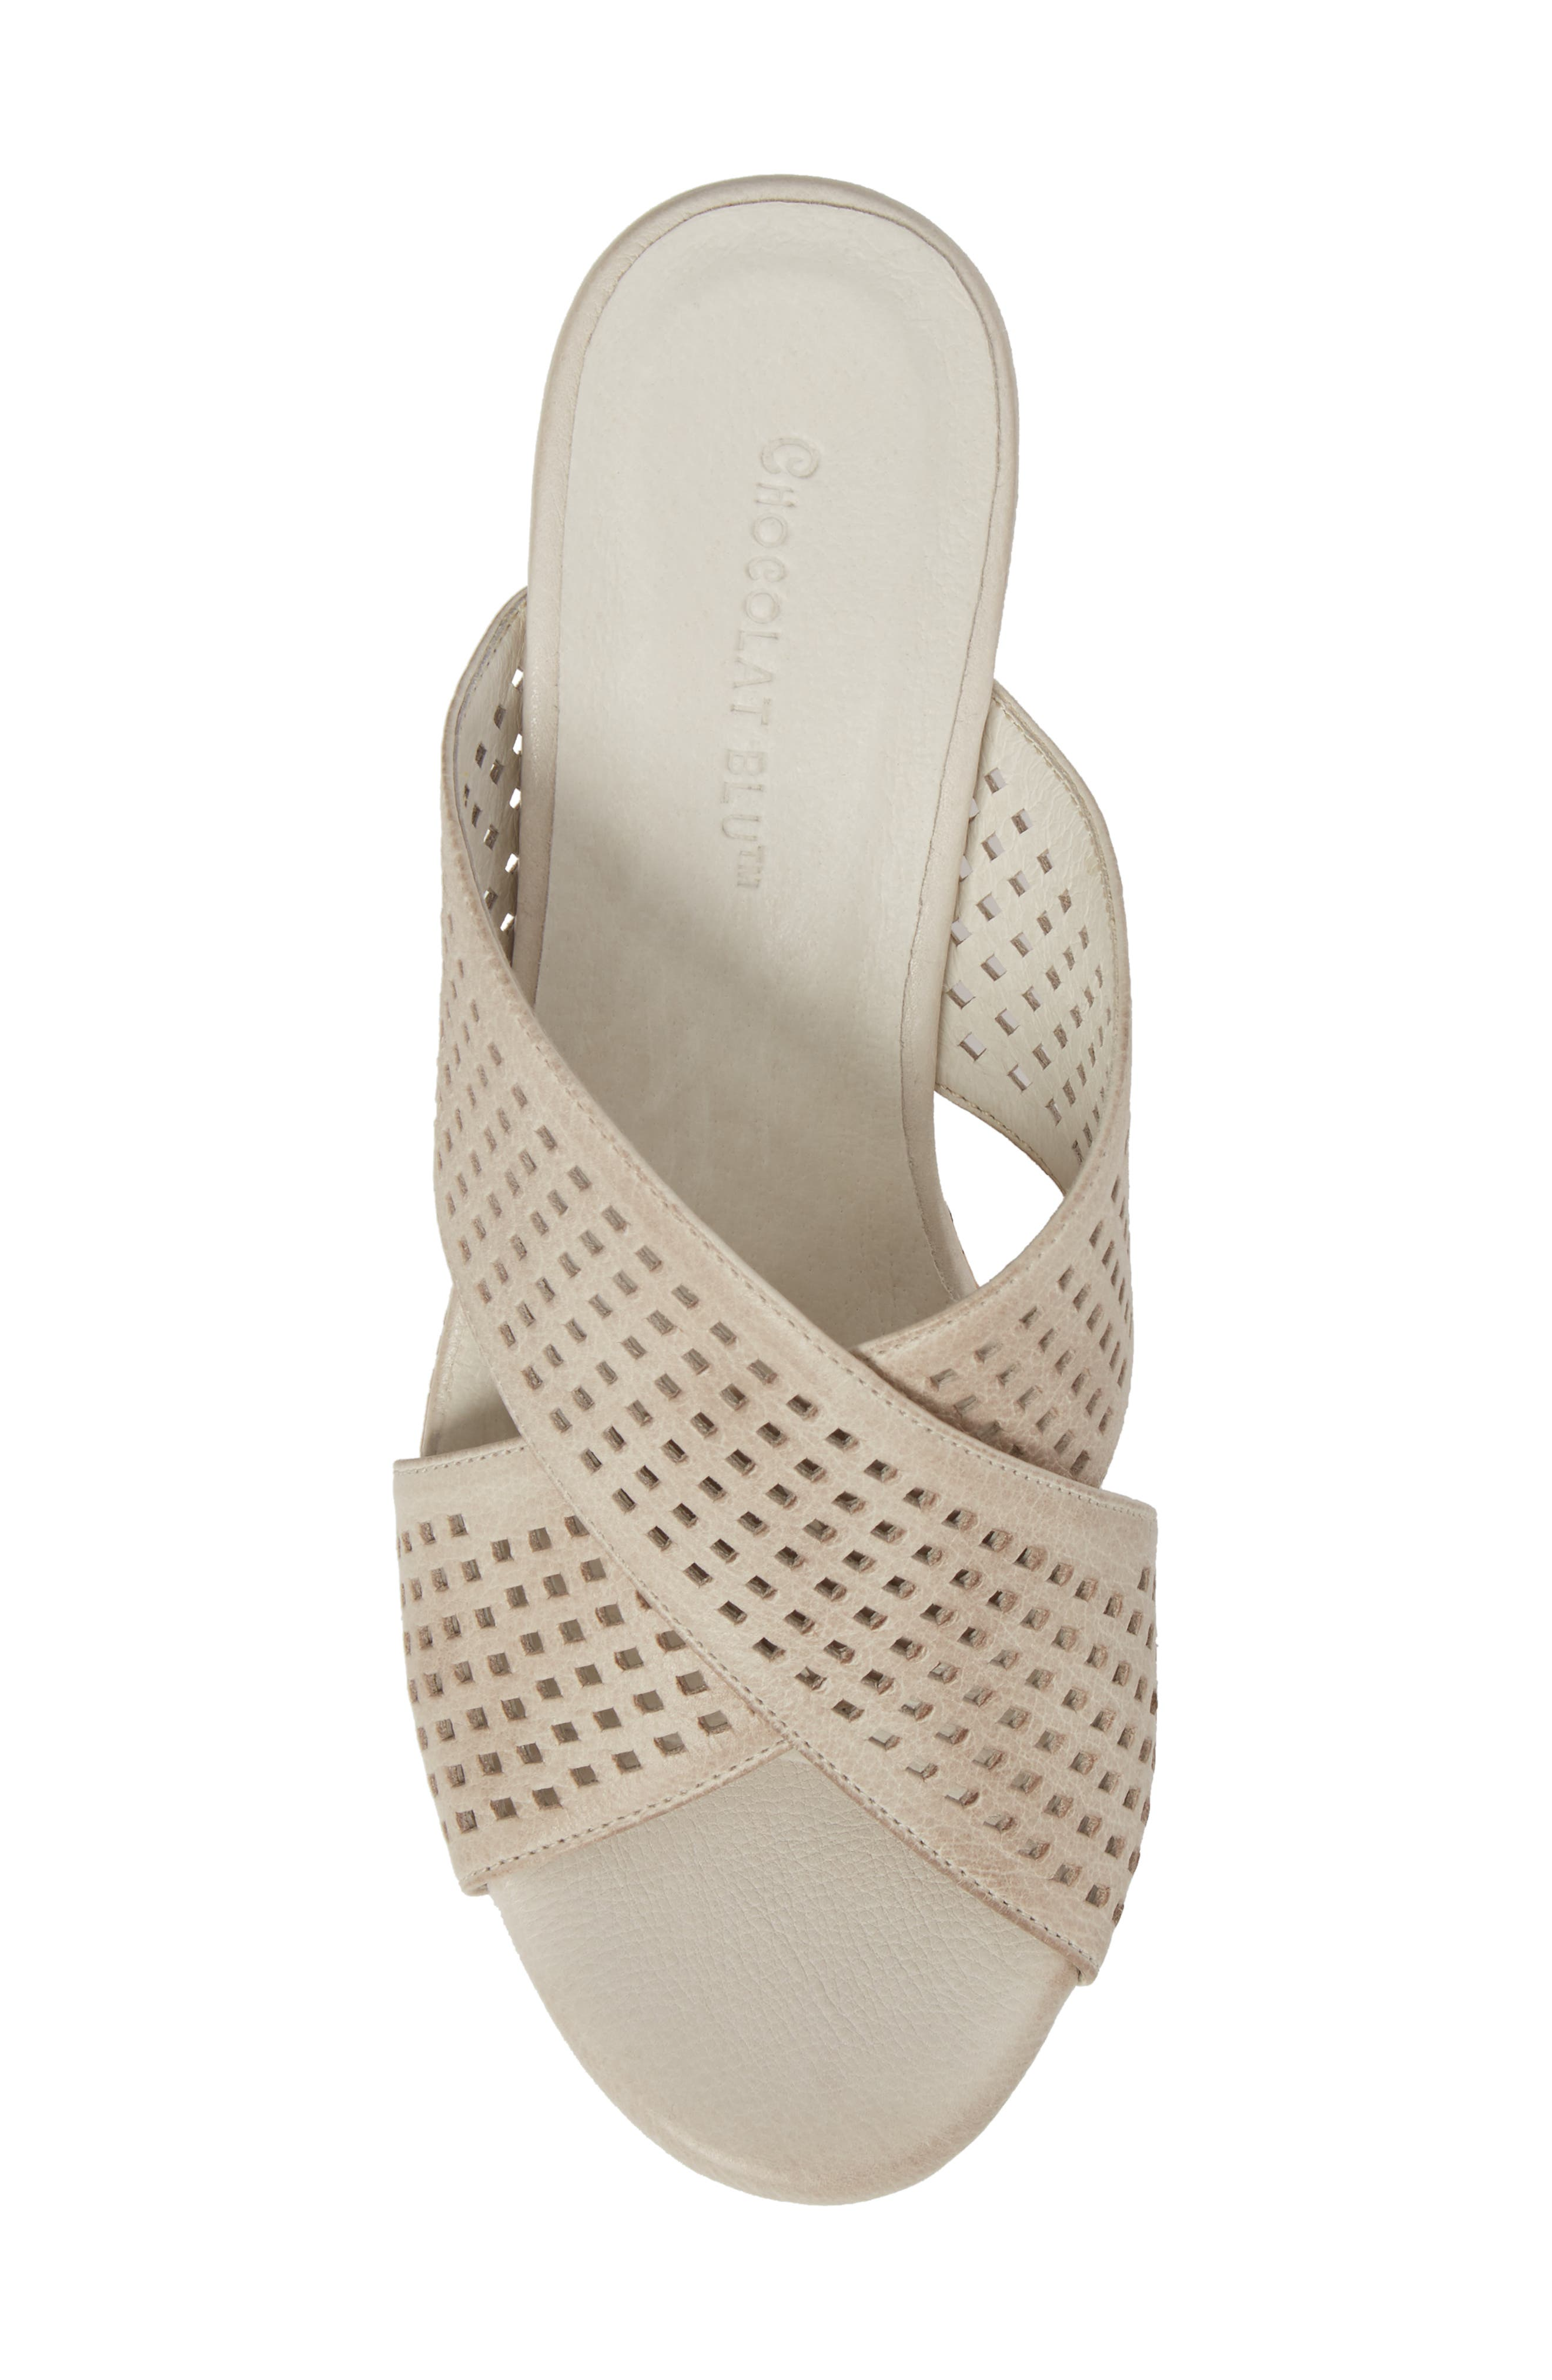 Wamblee Wedge Sandal,                             Alternate thumbnail 5, color,                             Ice Leather